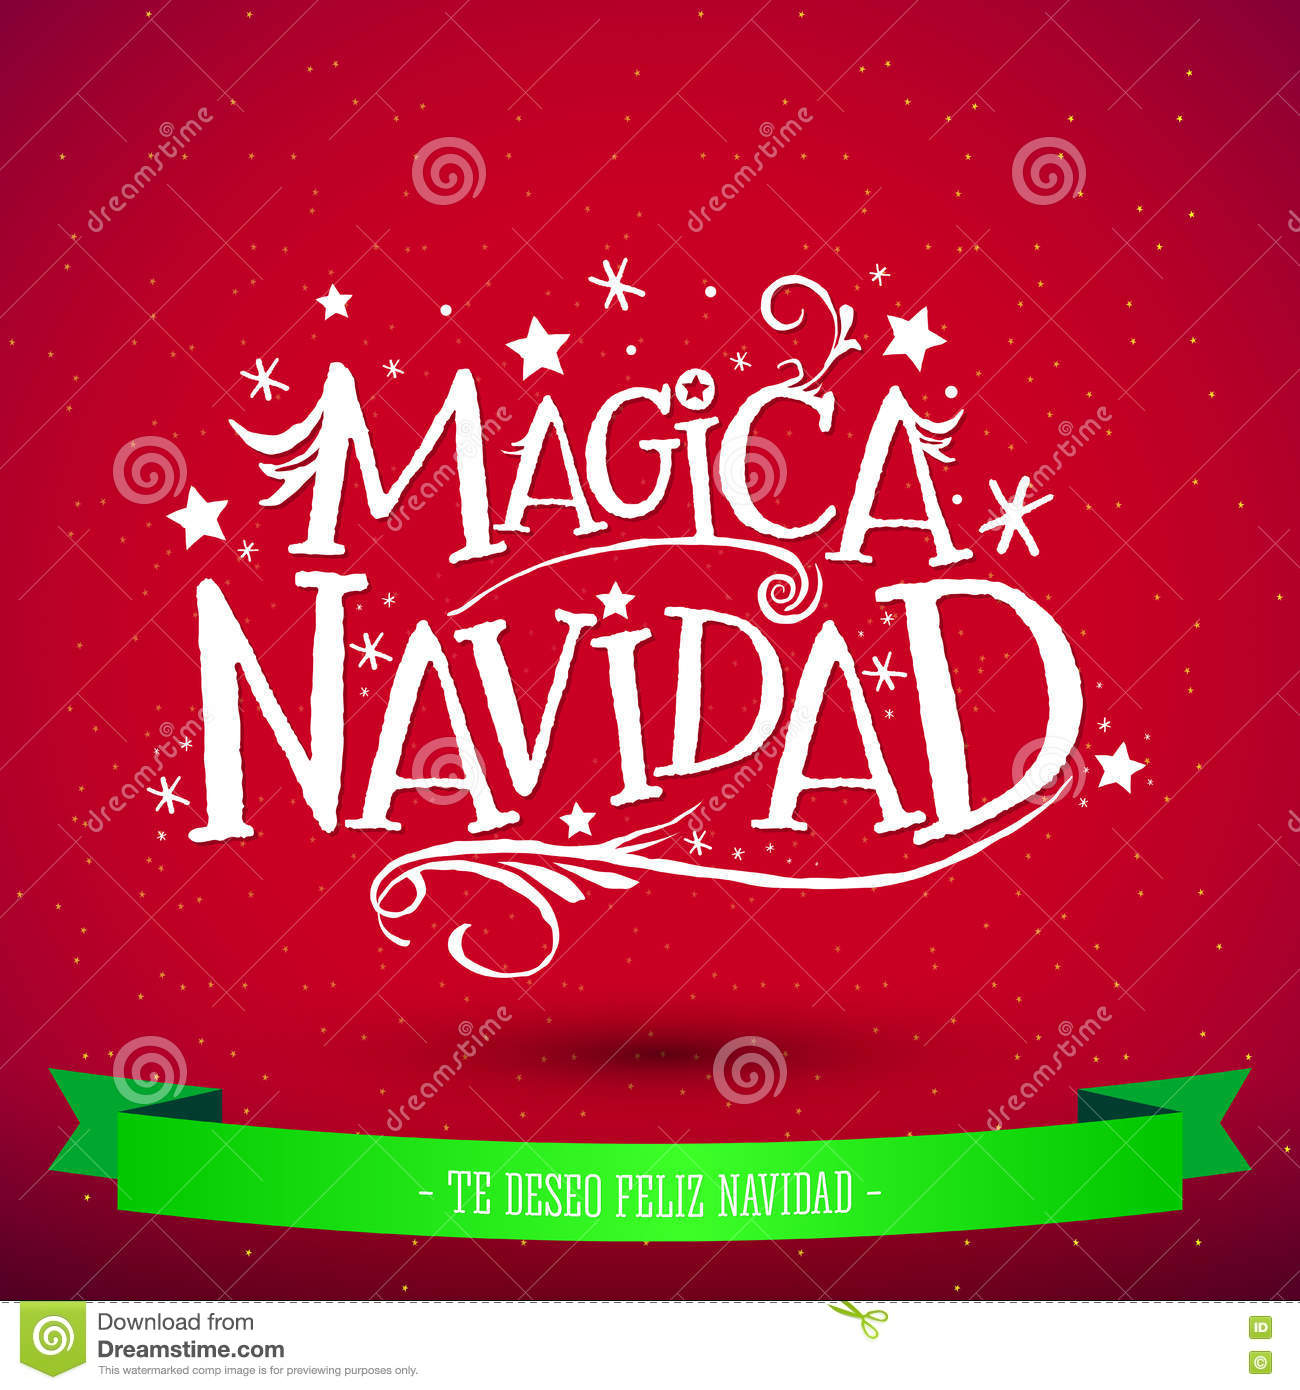 Magica navidad spanish translation magic christmas holiday magica navidad spanish translation magic christmas holiday greeting card merry christmas lettering kristyandbryce Images